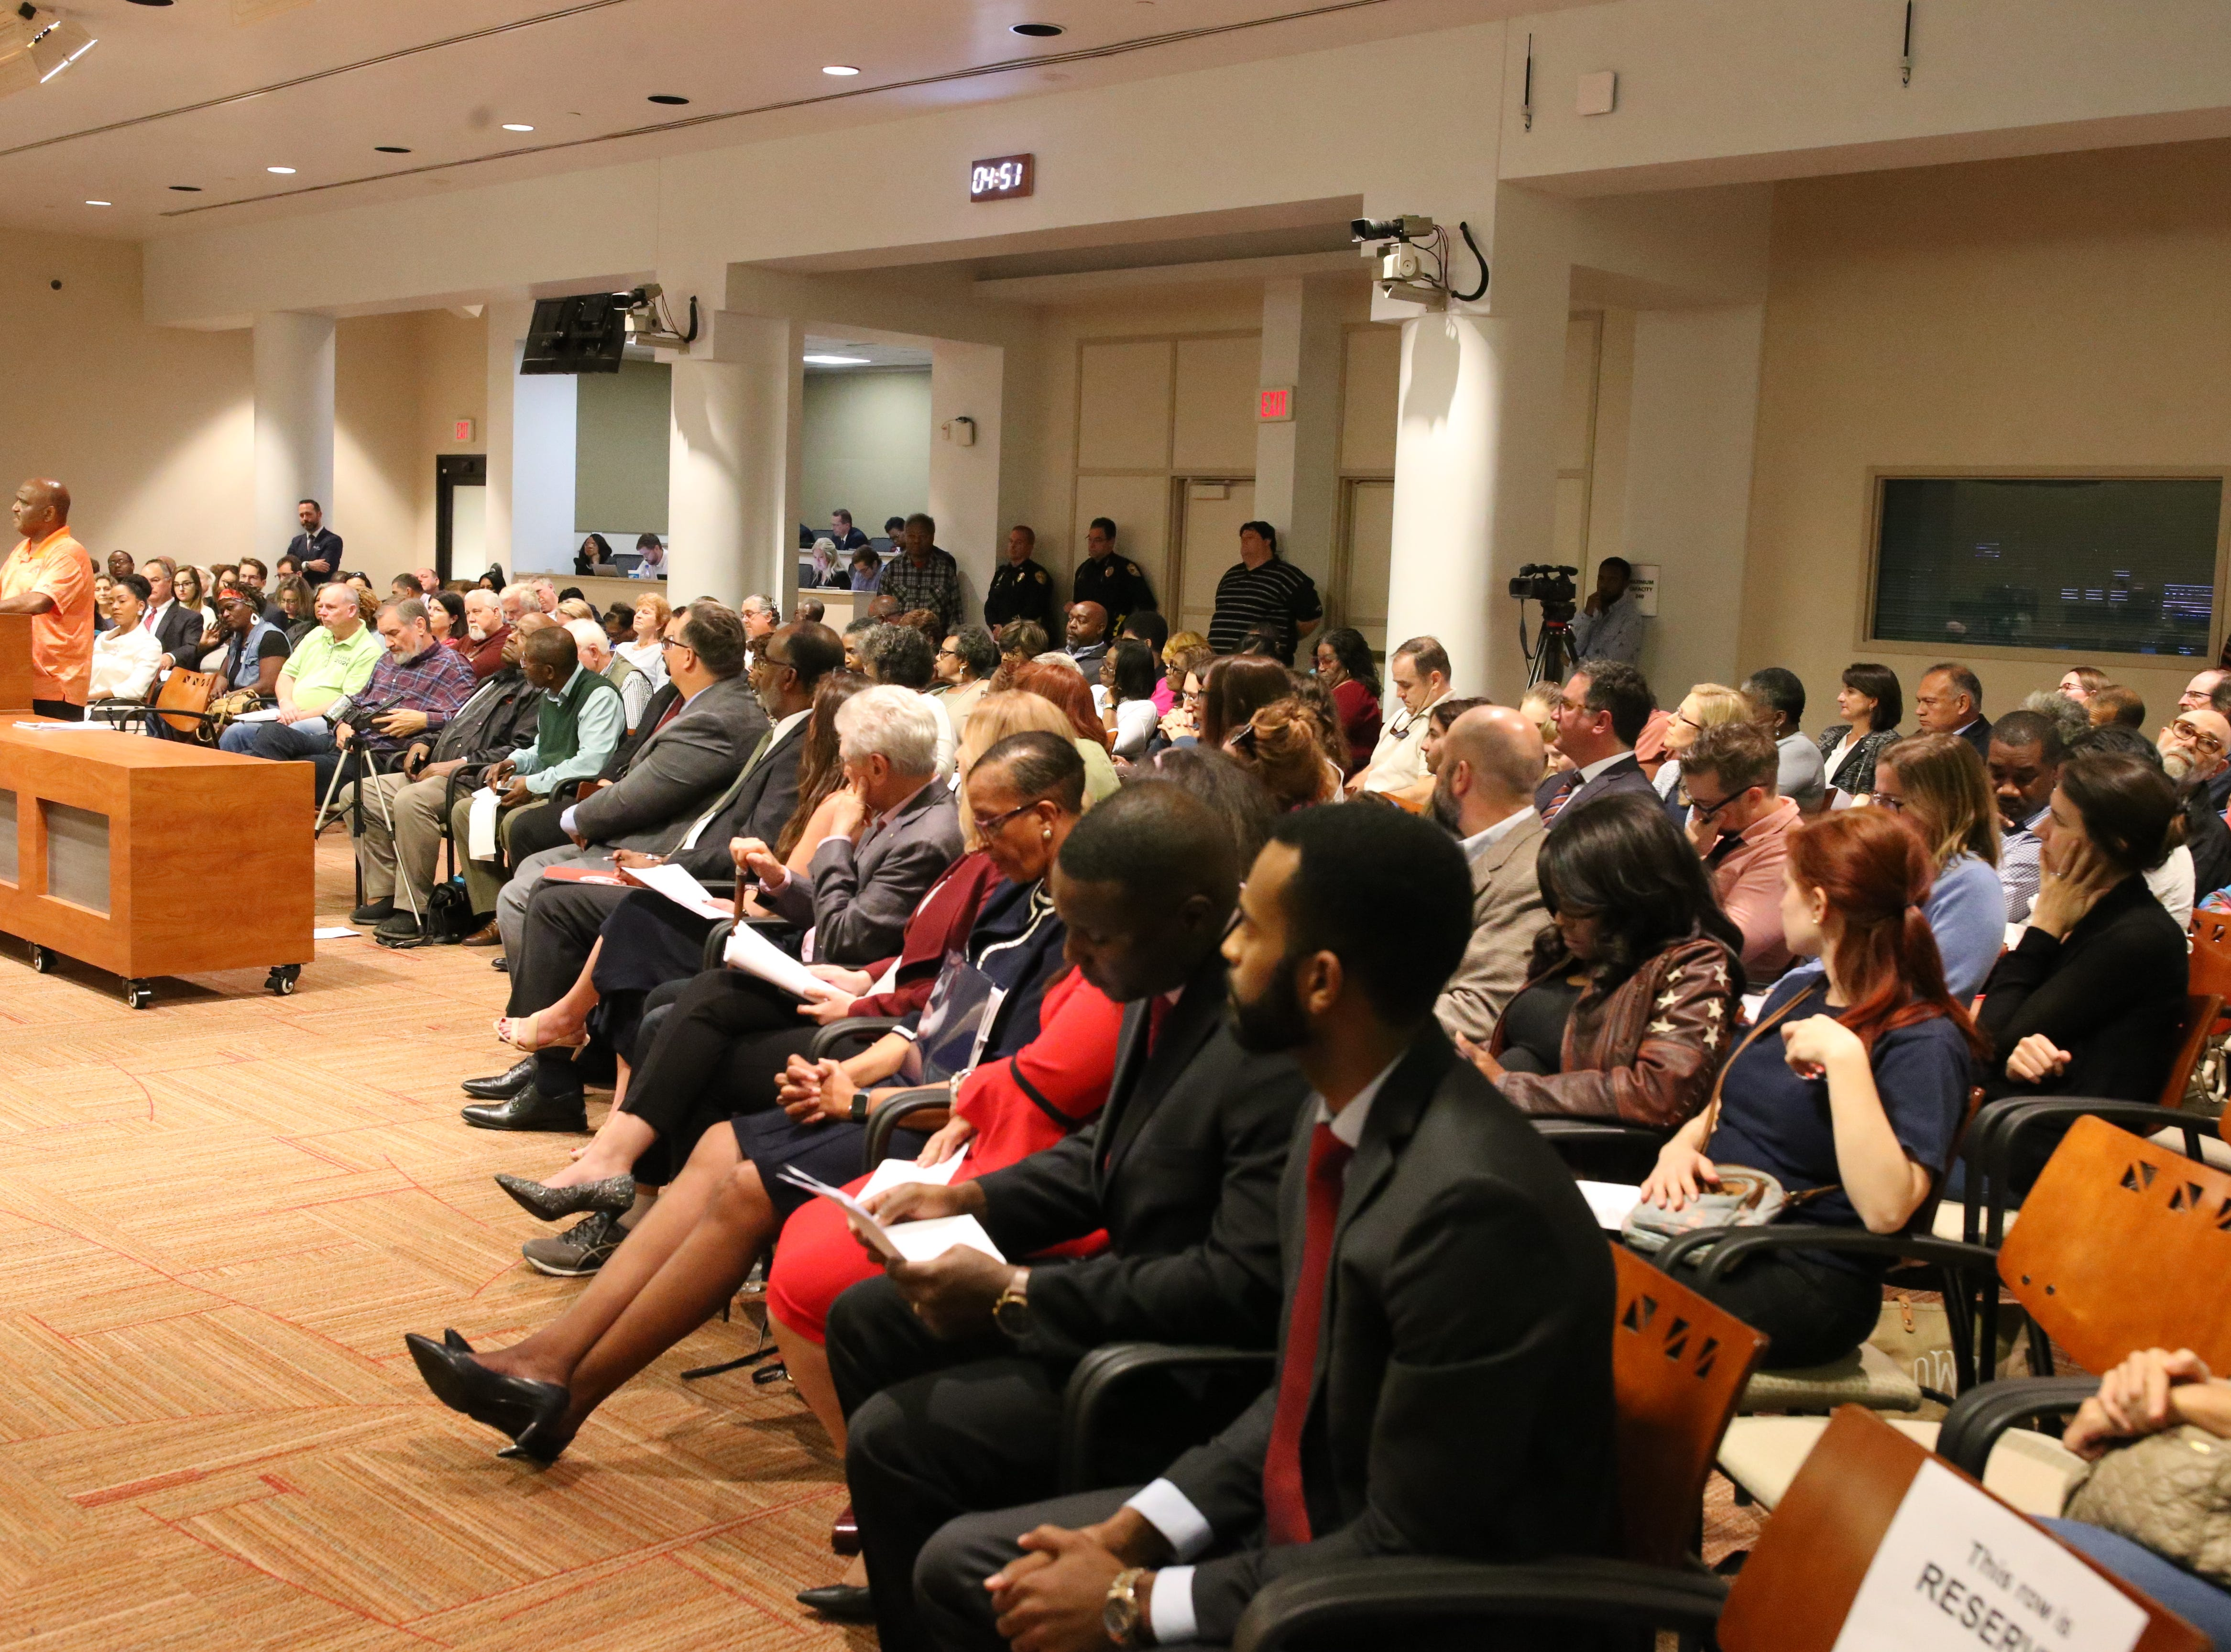 The Commission room is packed on Monday, Dec. 31, 2018, with Tallahasseeans awaiting to hear who will replace Scott Maddox as city commissioner after he was removed from office.